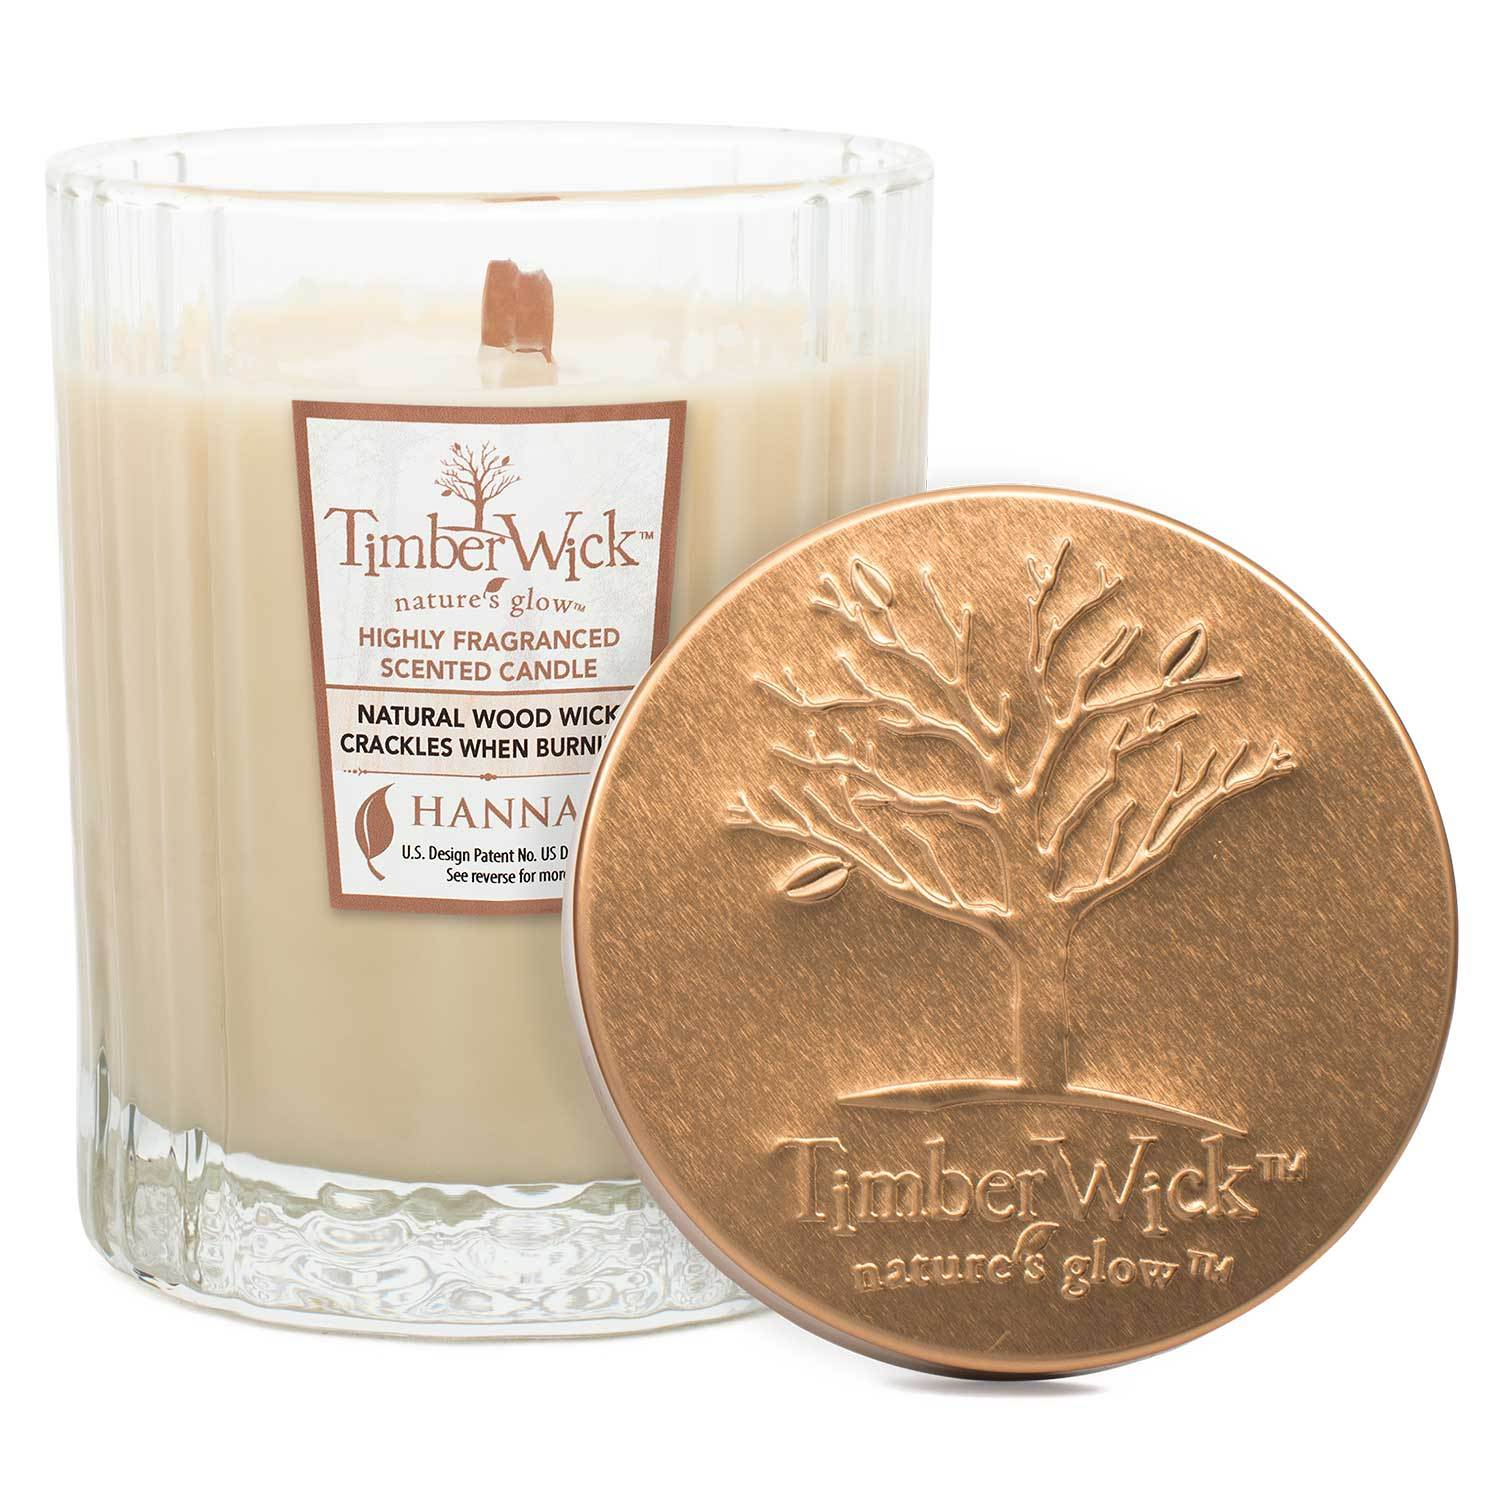 Timberwick Vanilla Brulee Scented Wax Textured Tumbler Candle Timberwick Candlemart.com $ 9.99